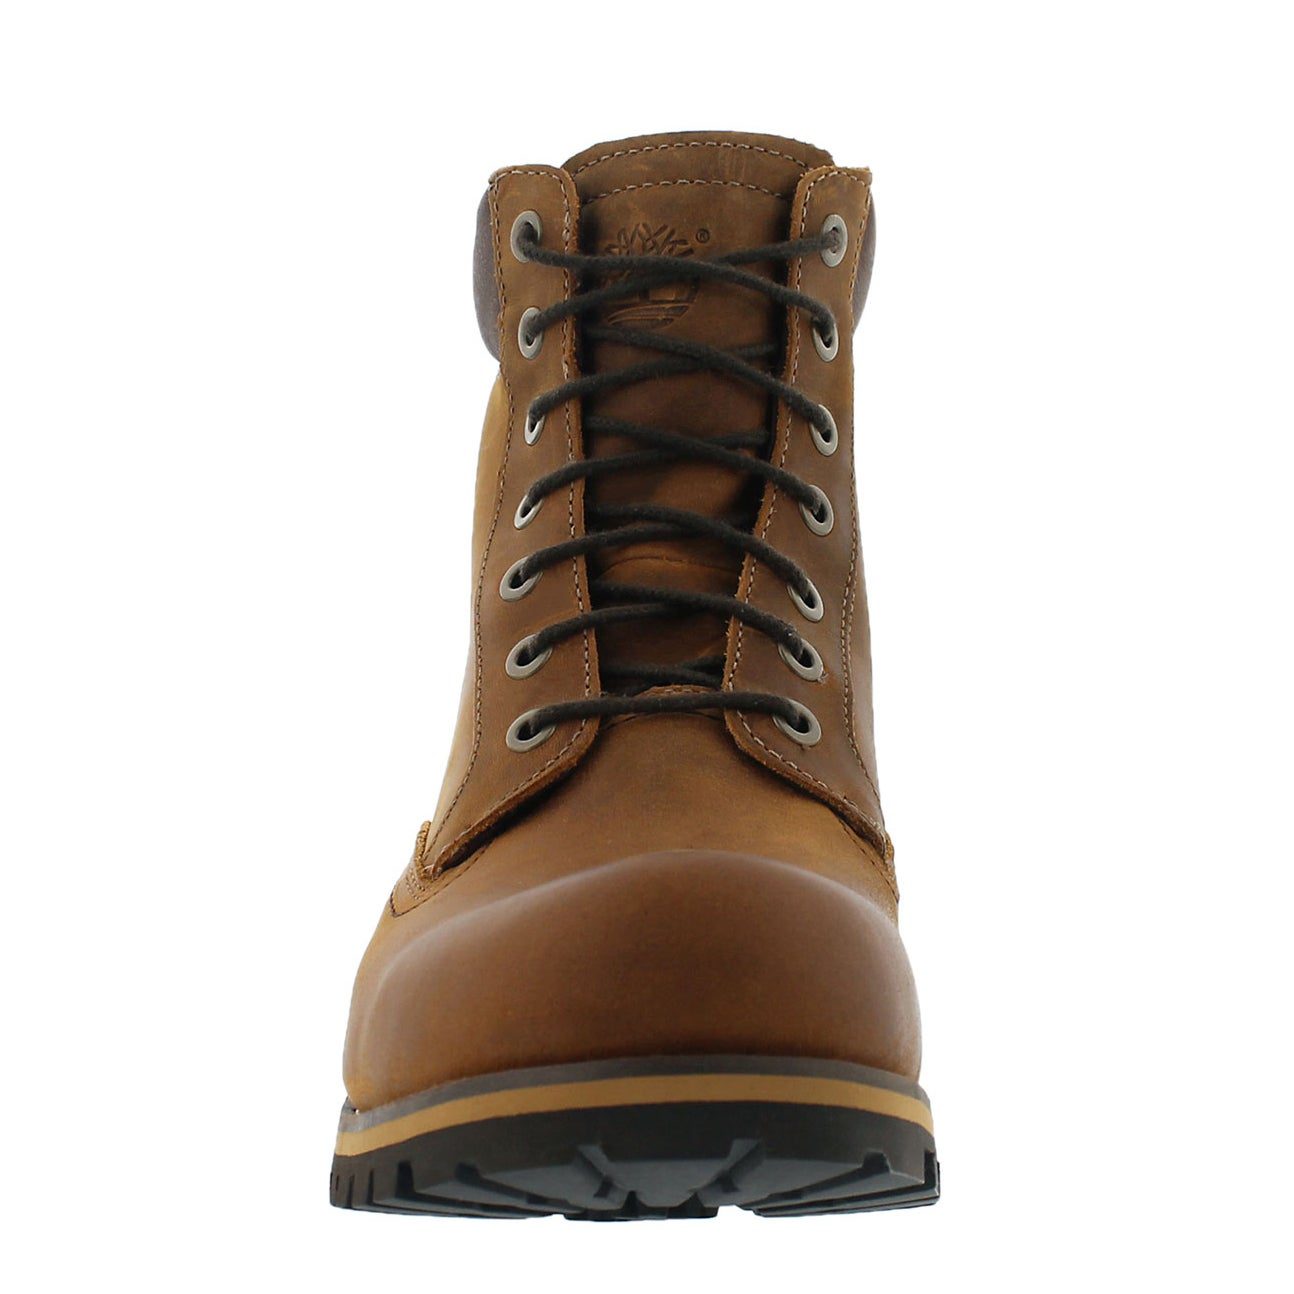 Mns Timberland Rugged copper wtpf boot